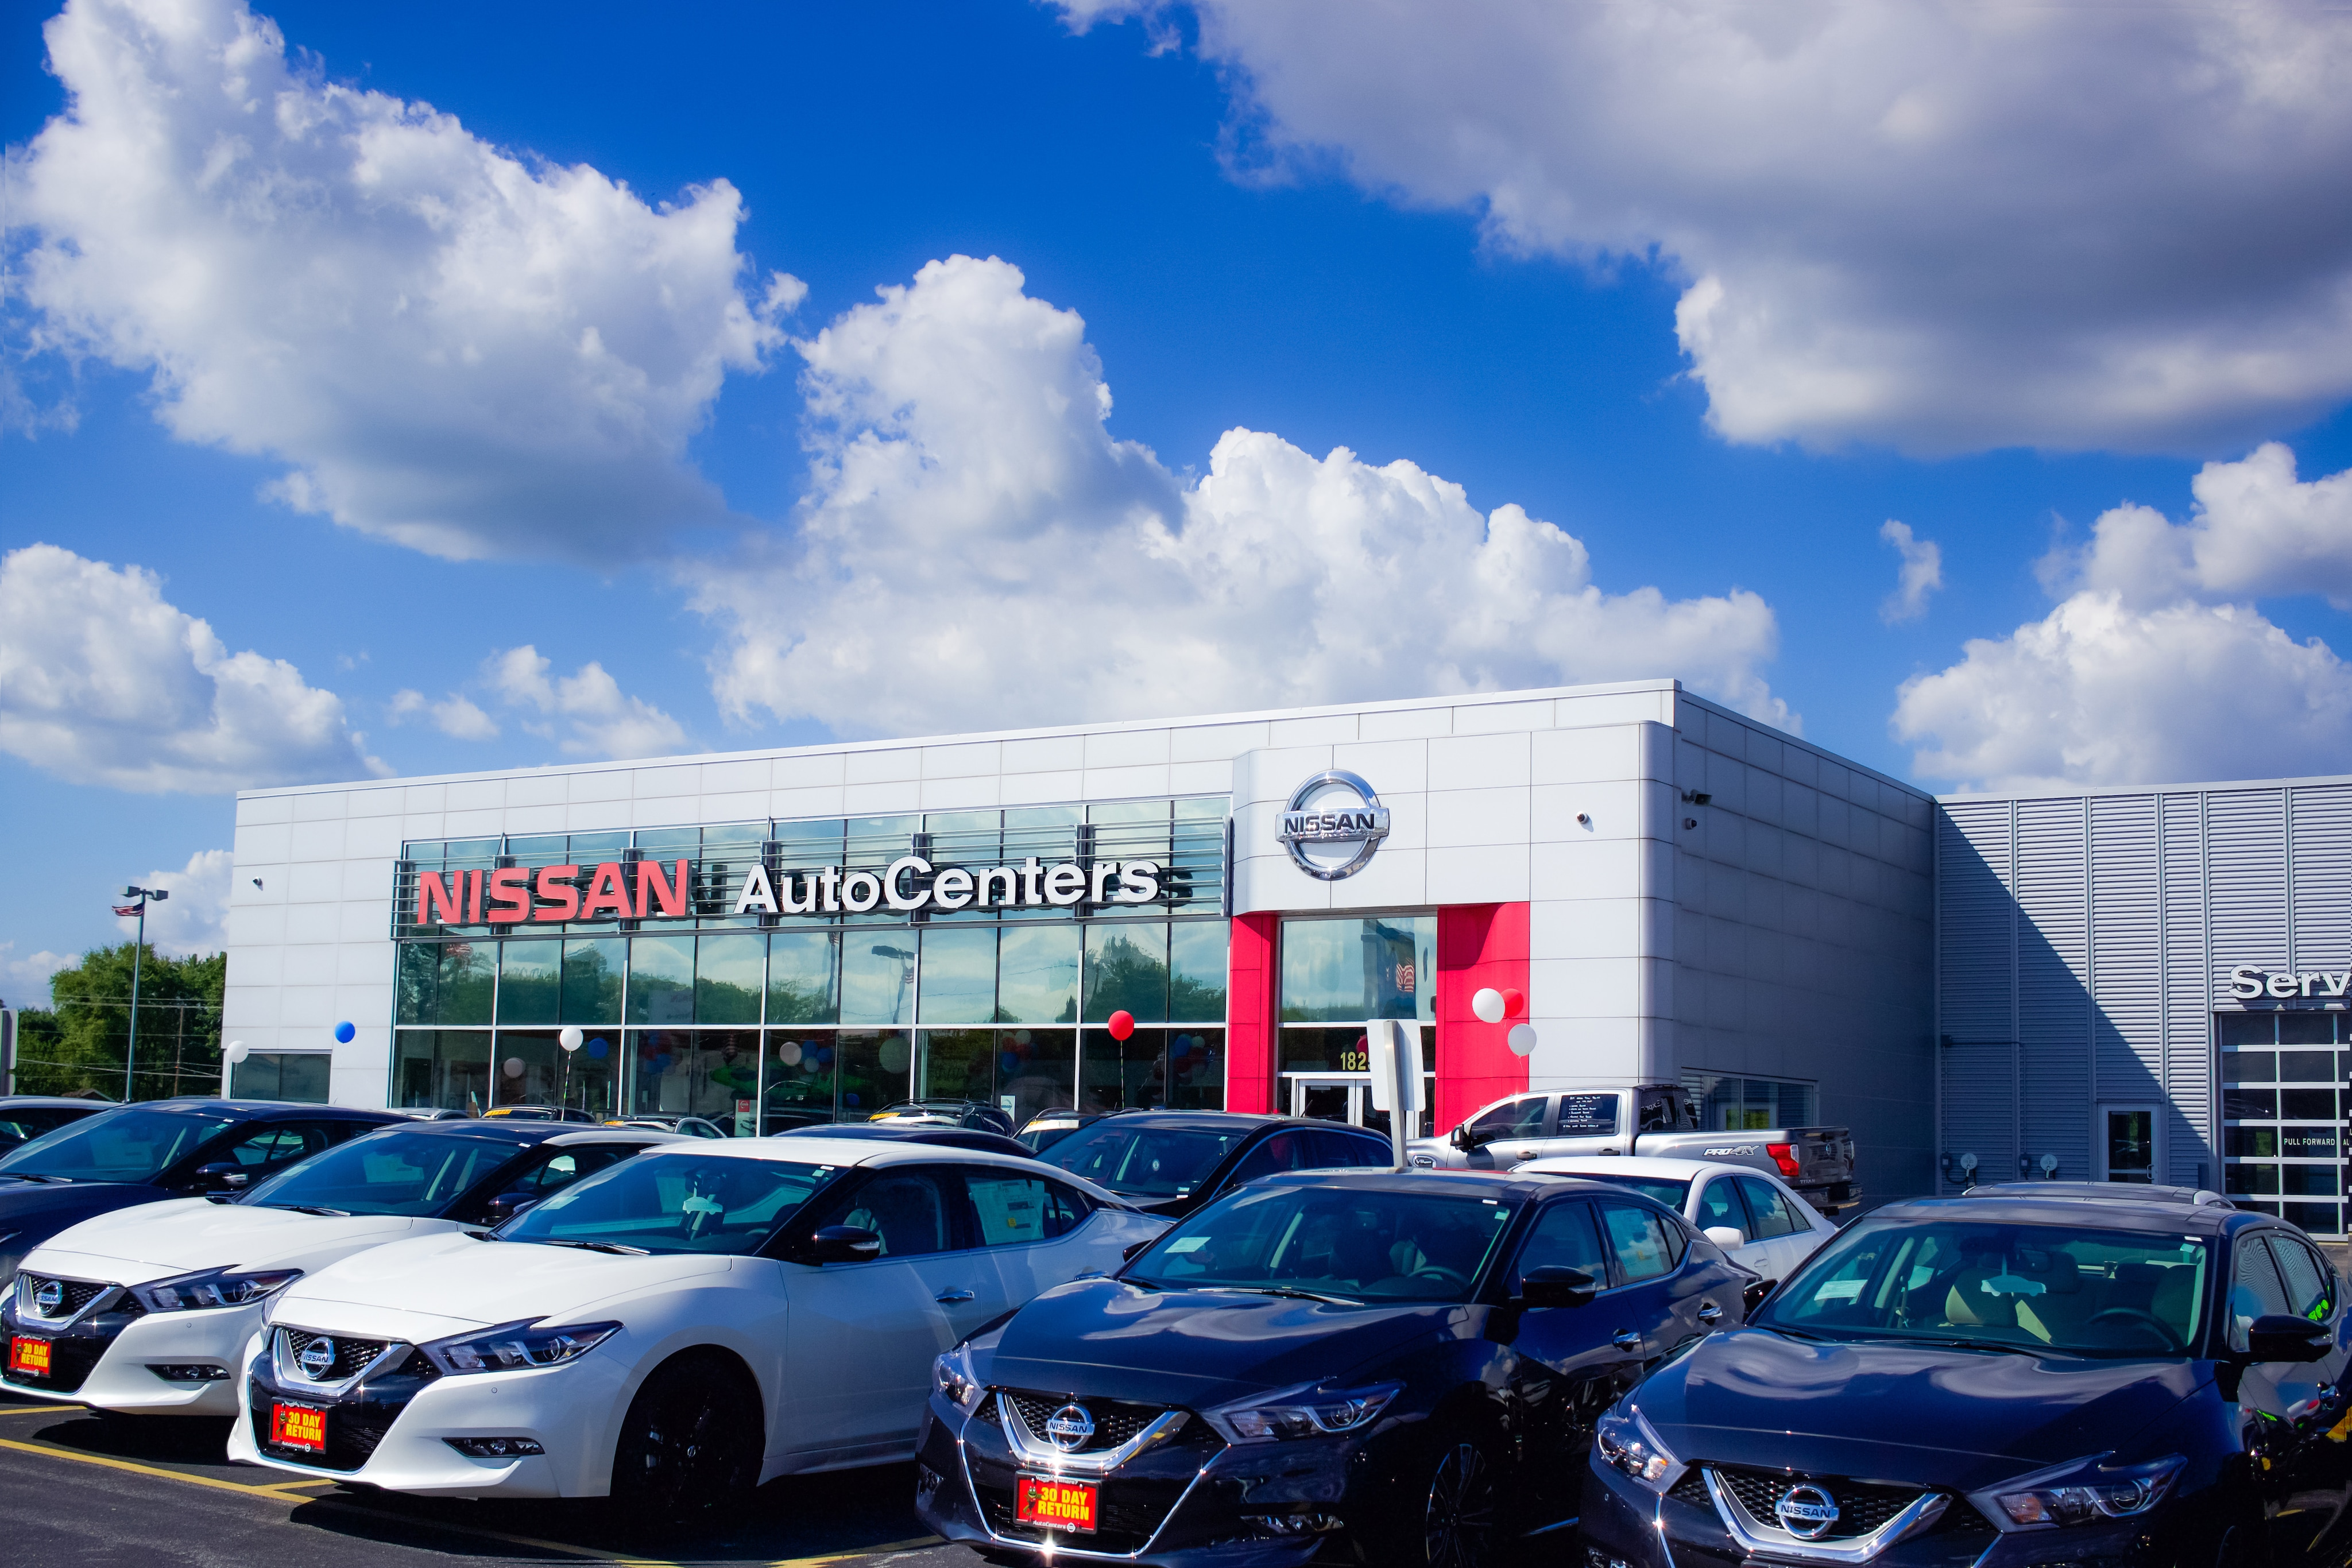 st louis nissan dealerships autocenters nissan st louis area nissan dealer